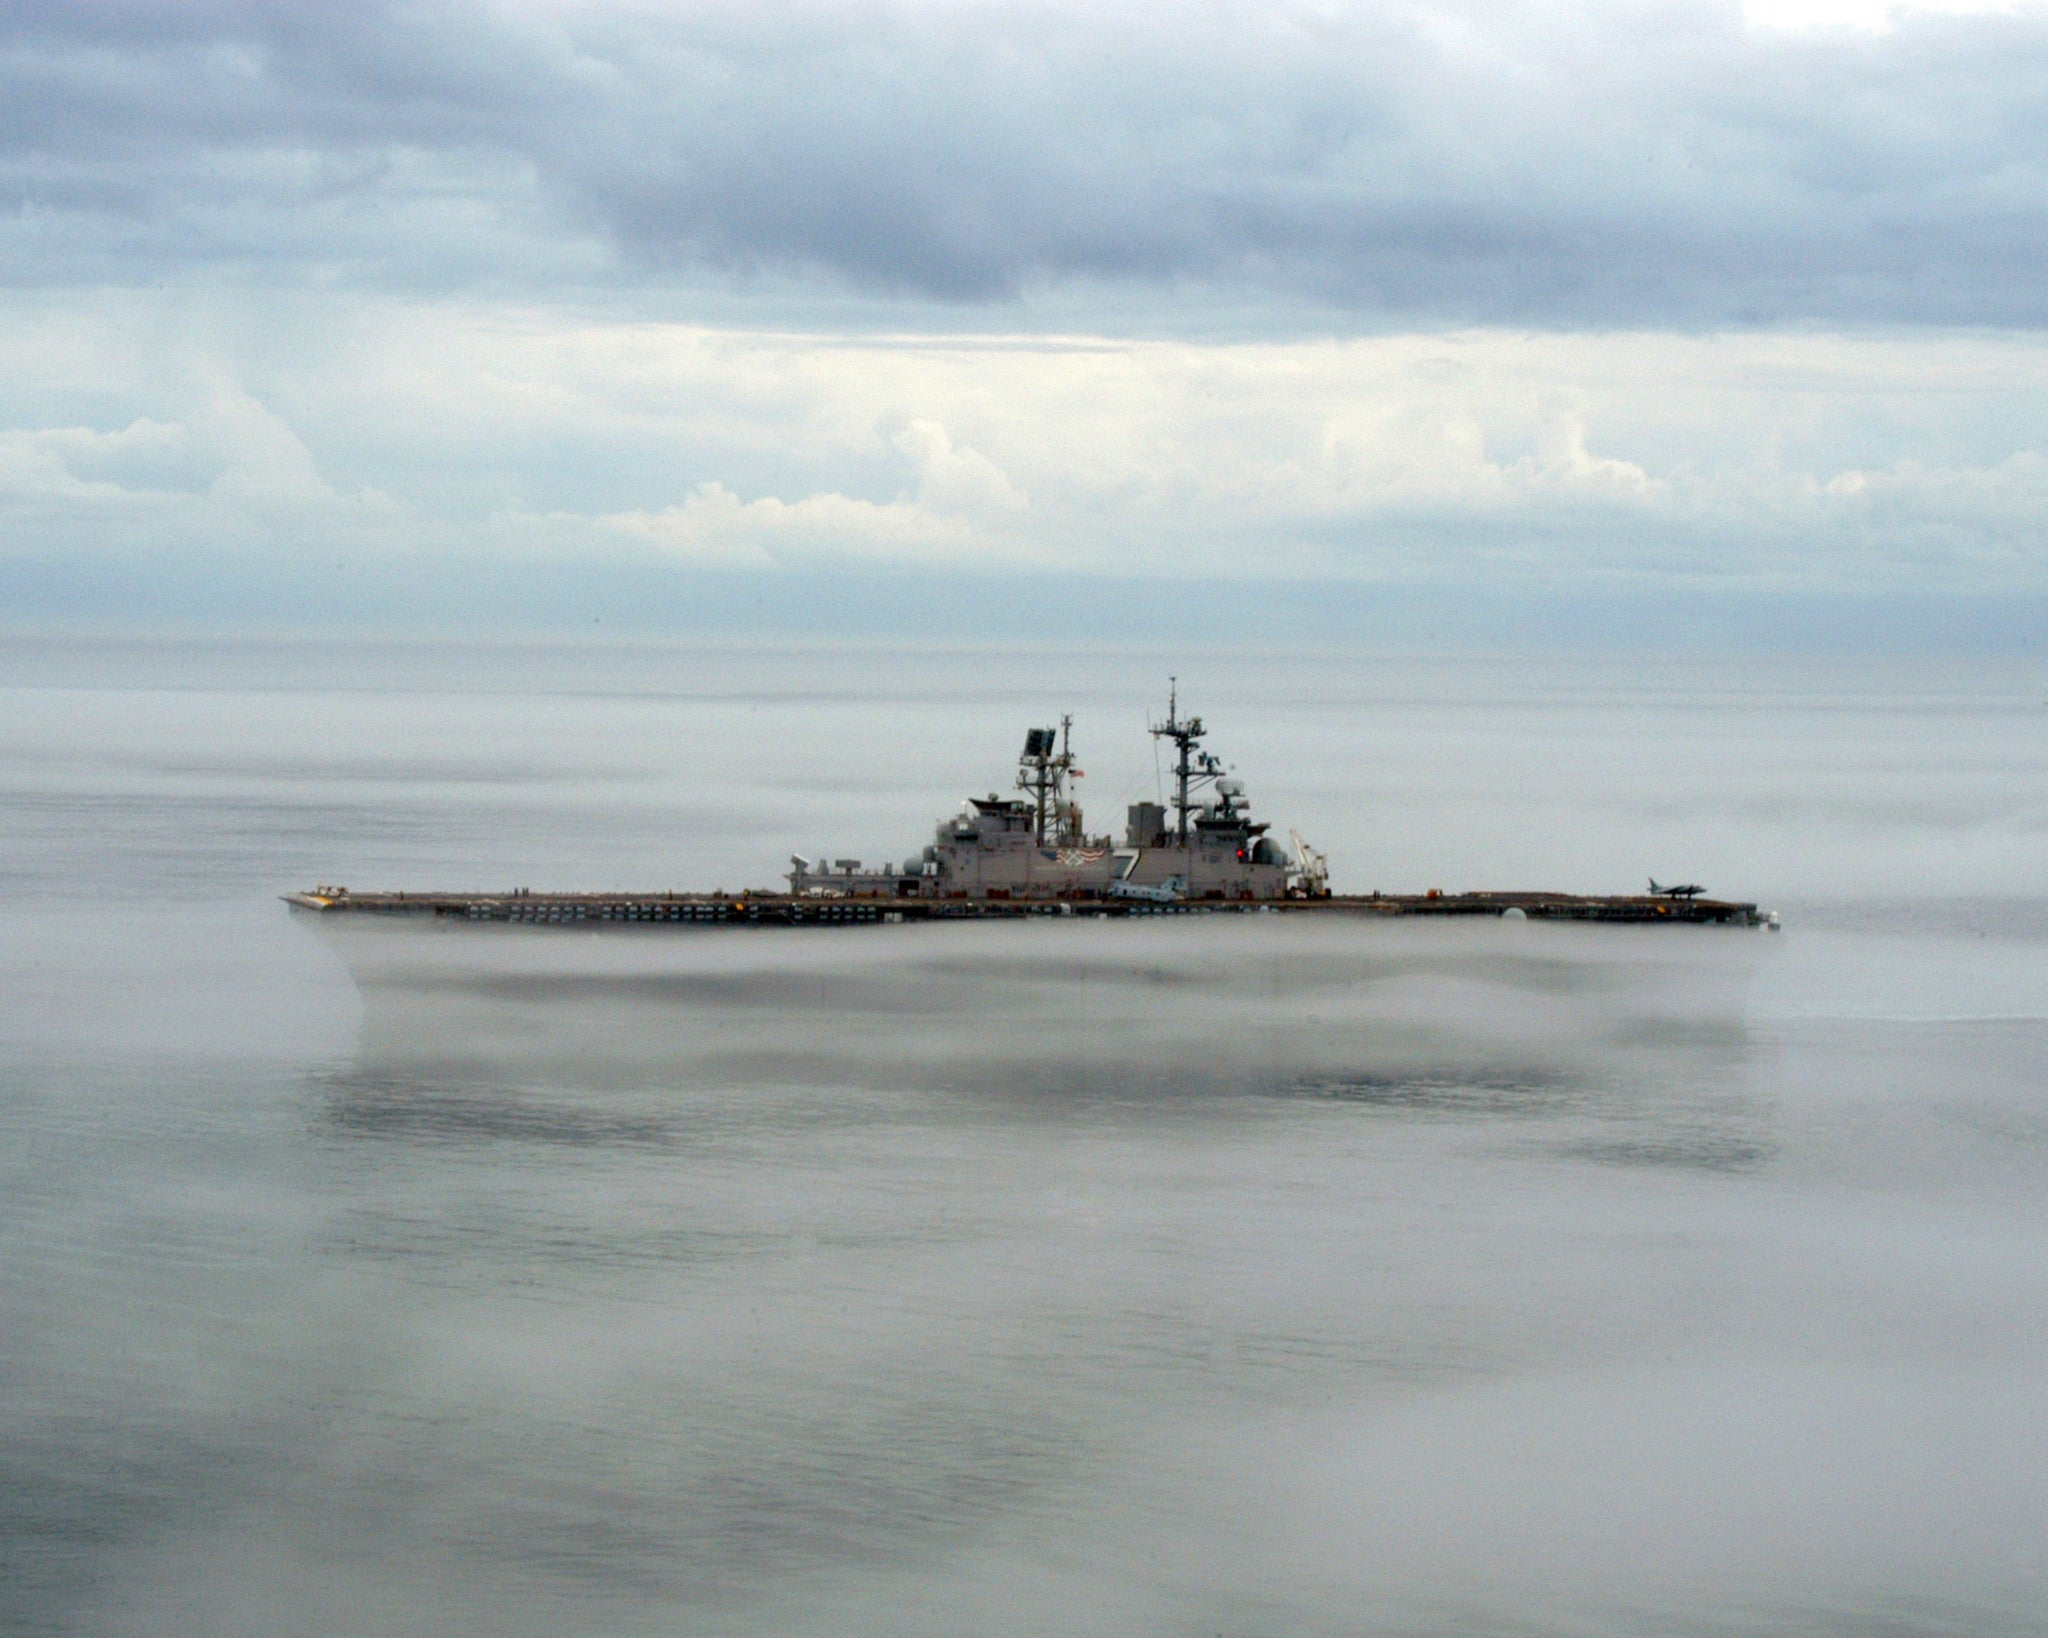 "USS Iwo Jima LHD-7 Atlantic Ocean Surrounded by Fog January 15, 2006 - 8 x 10"" Photograph"